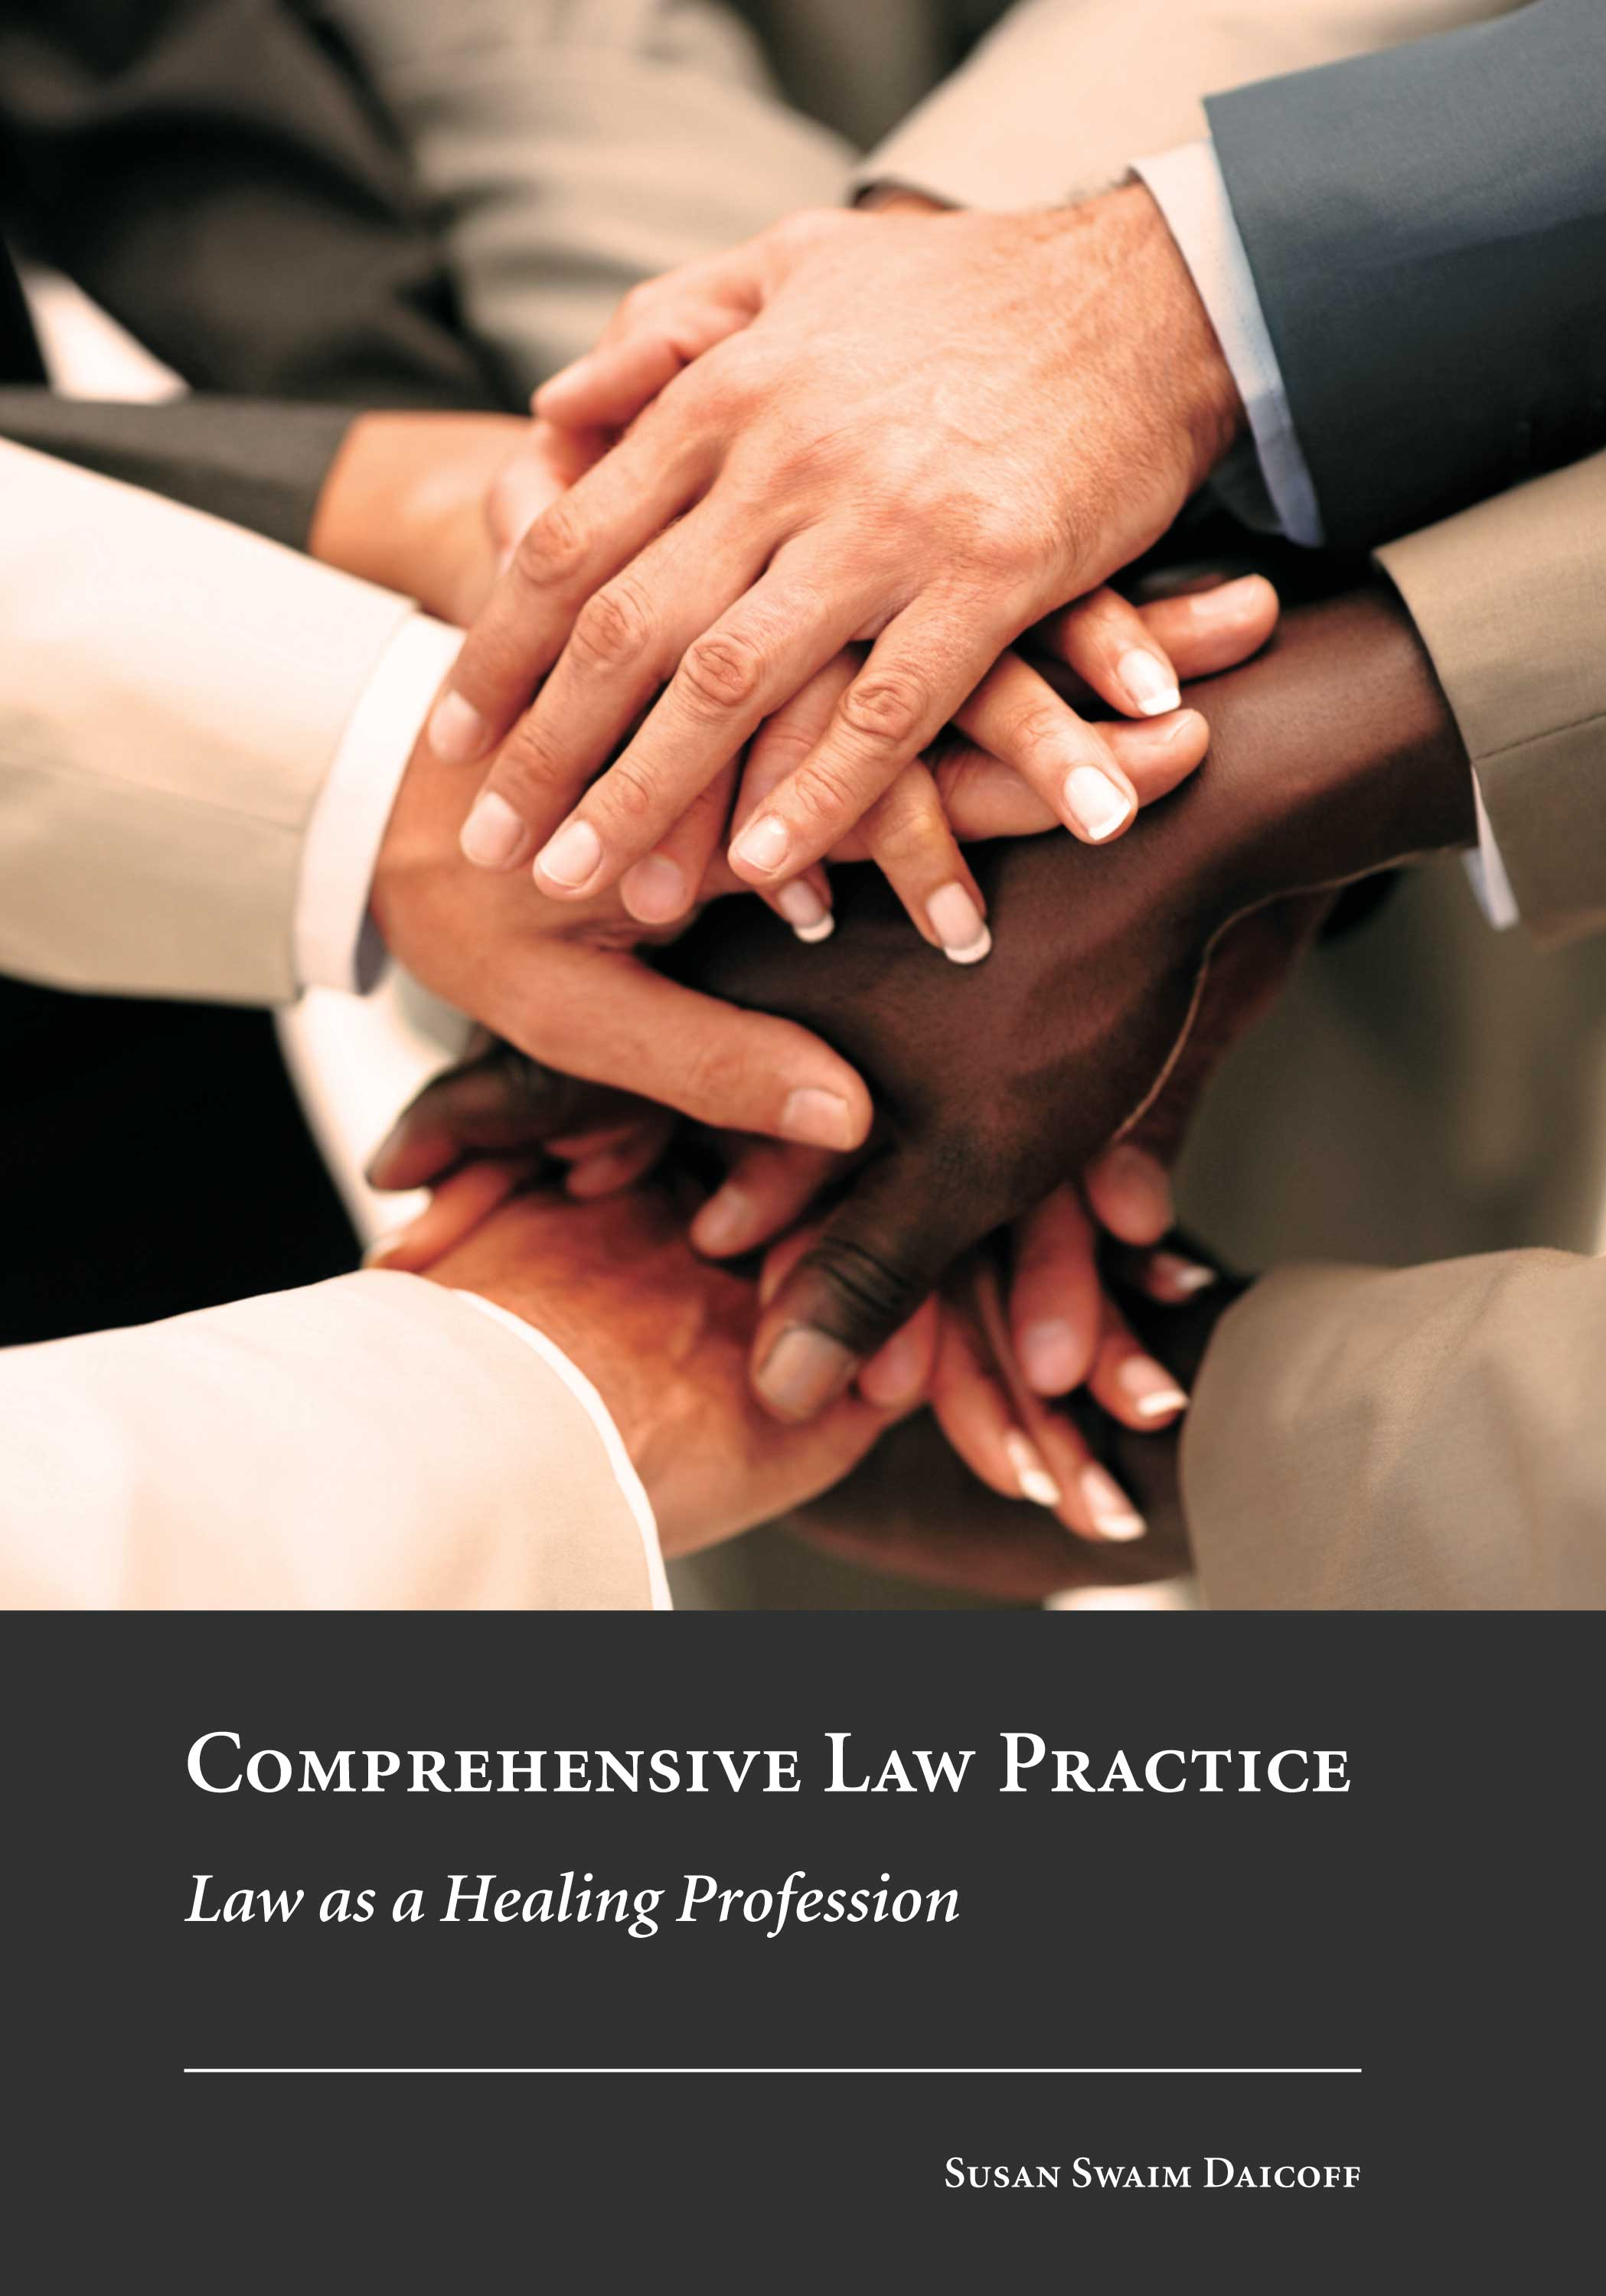 Cover of new textbook on the comprehensive law movement